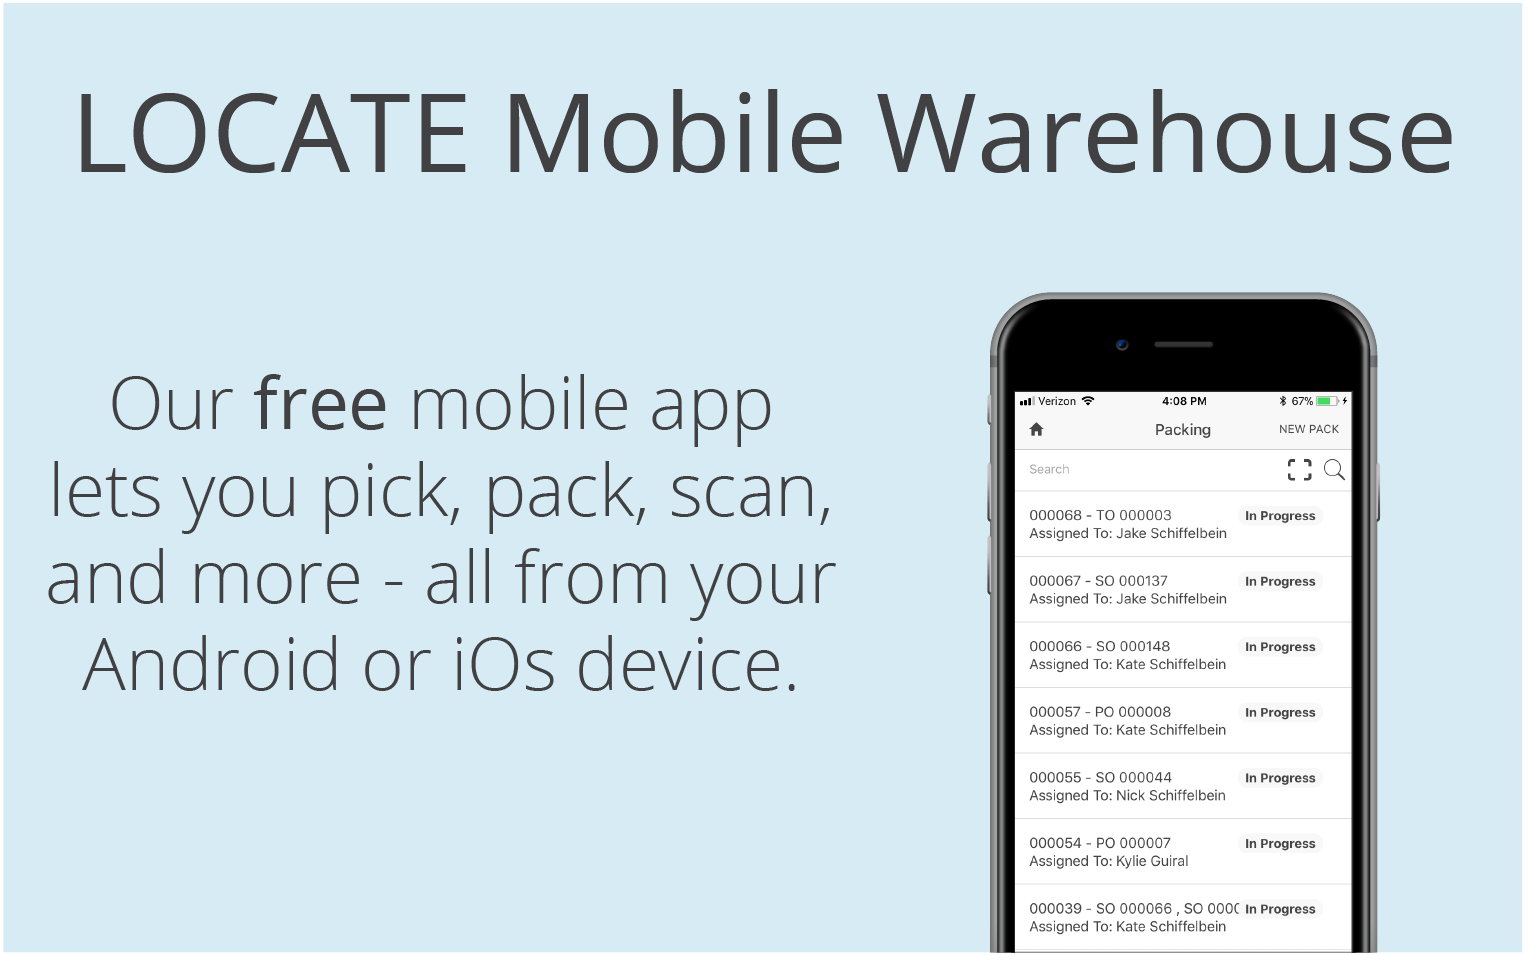 LOCATE's mobile app facilitates your warehouse operations to bring accuracy & efficiency to your fulfillment process. The app runs on almost any Android or iOS device, so you can take advantage of barcoding in your warehouse at a fraction of the cost.